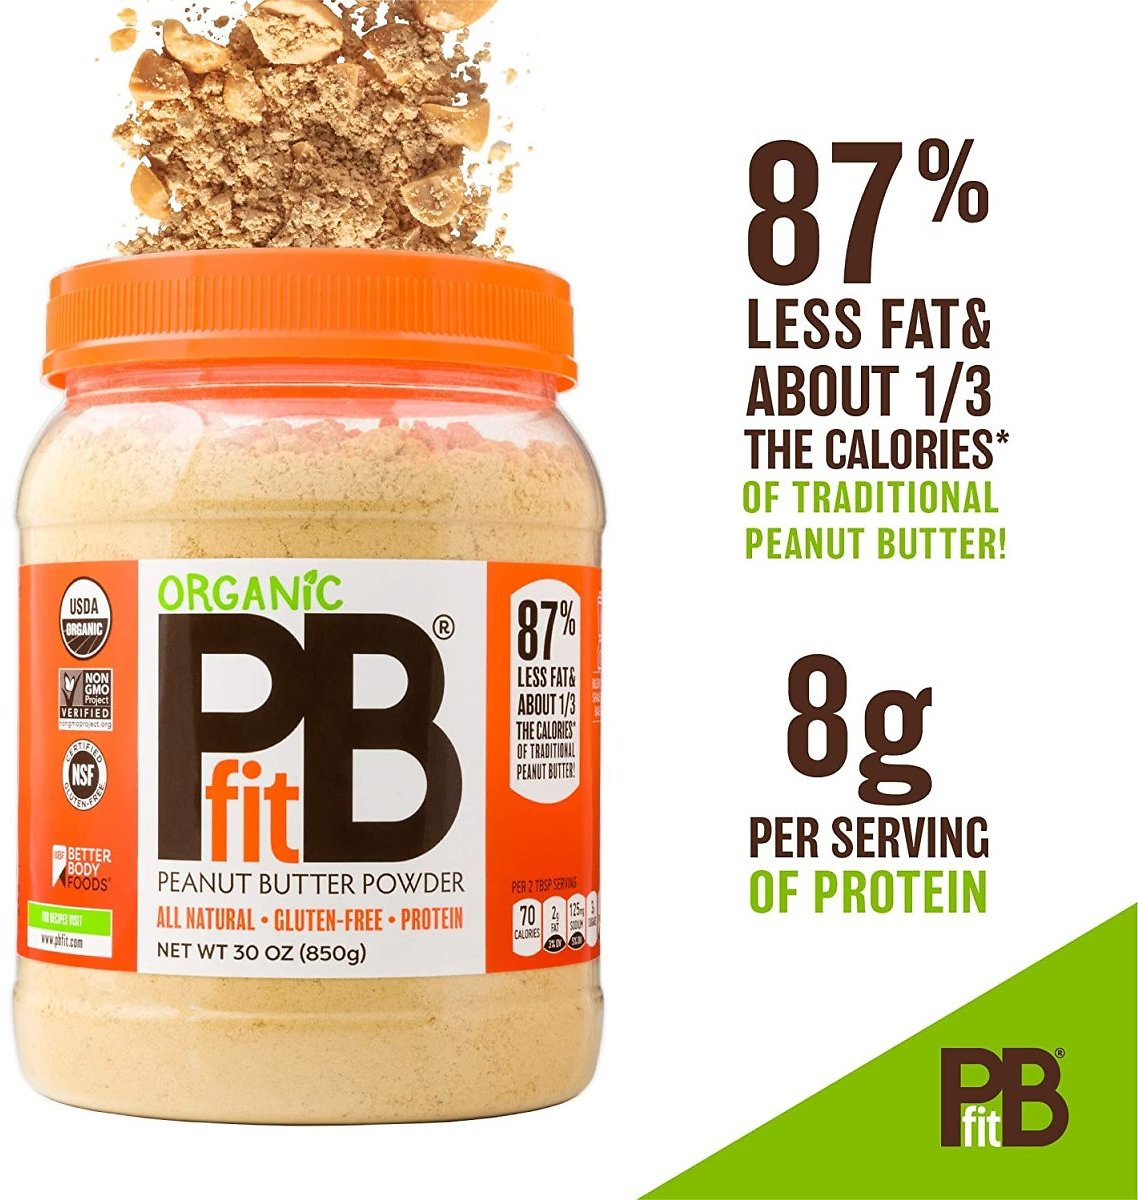 Save $2.30 On PBfit Peanut Spread from Real Roasted Pressed Peanuts, 8g of Protein (30 Oz.)